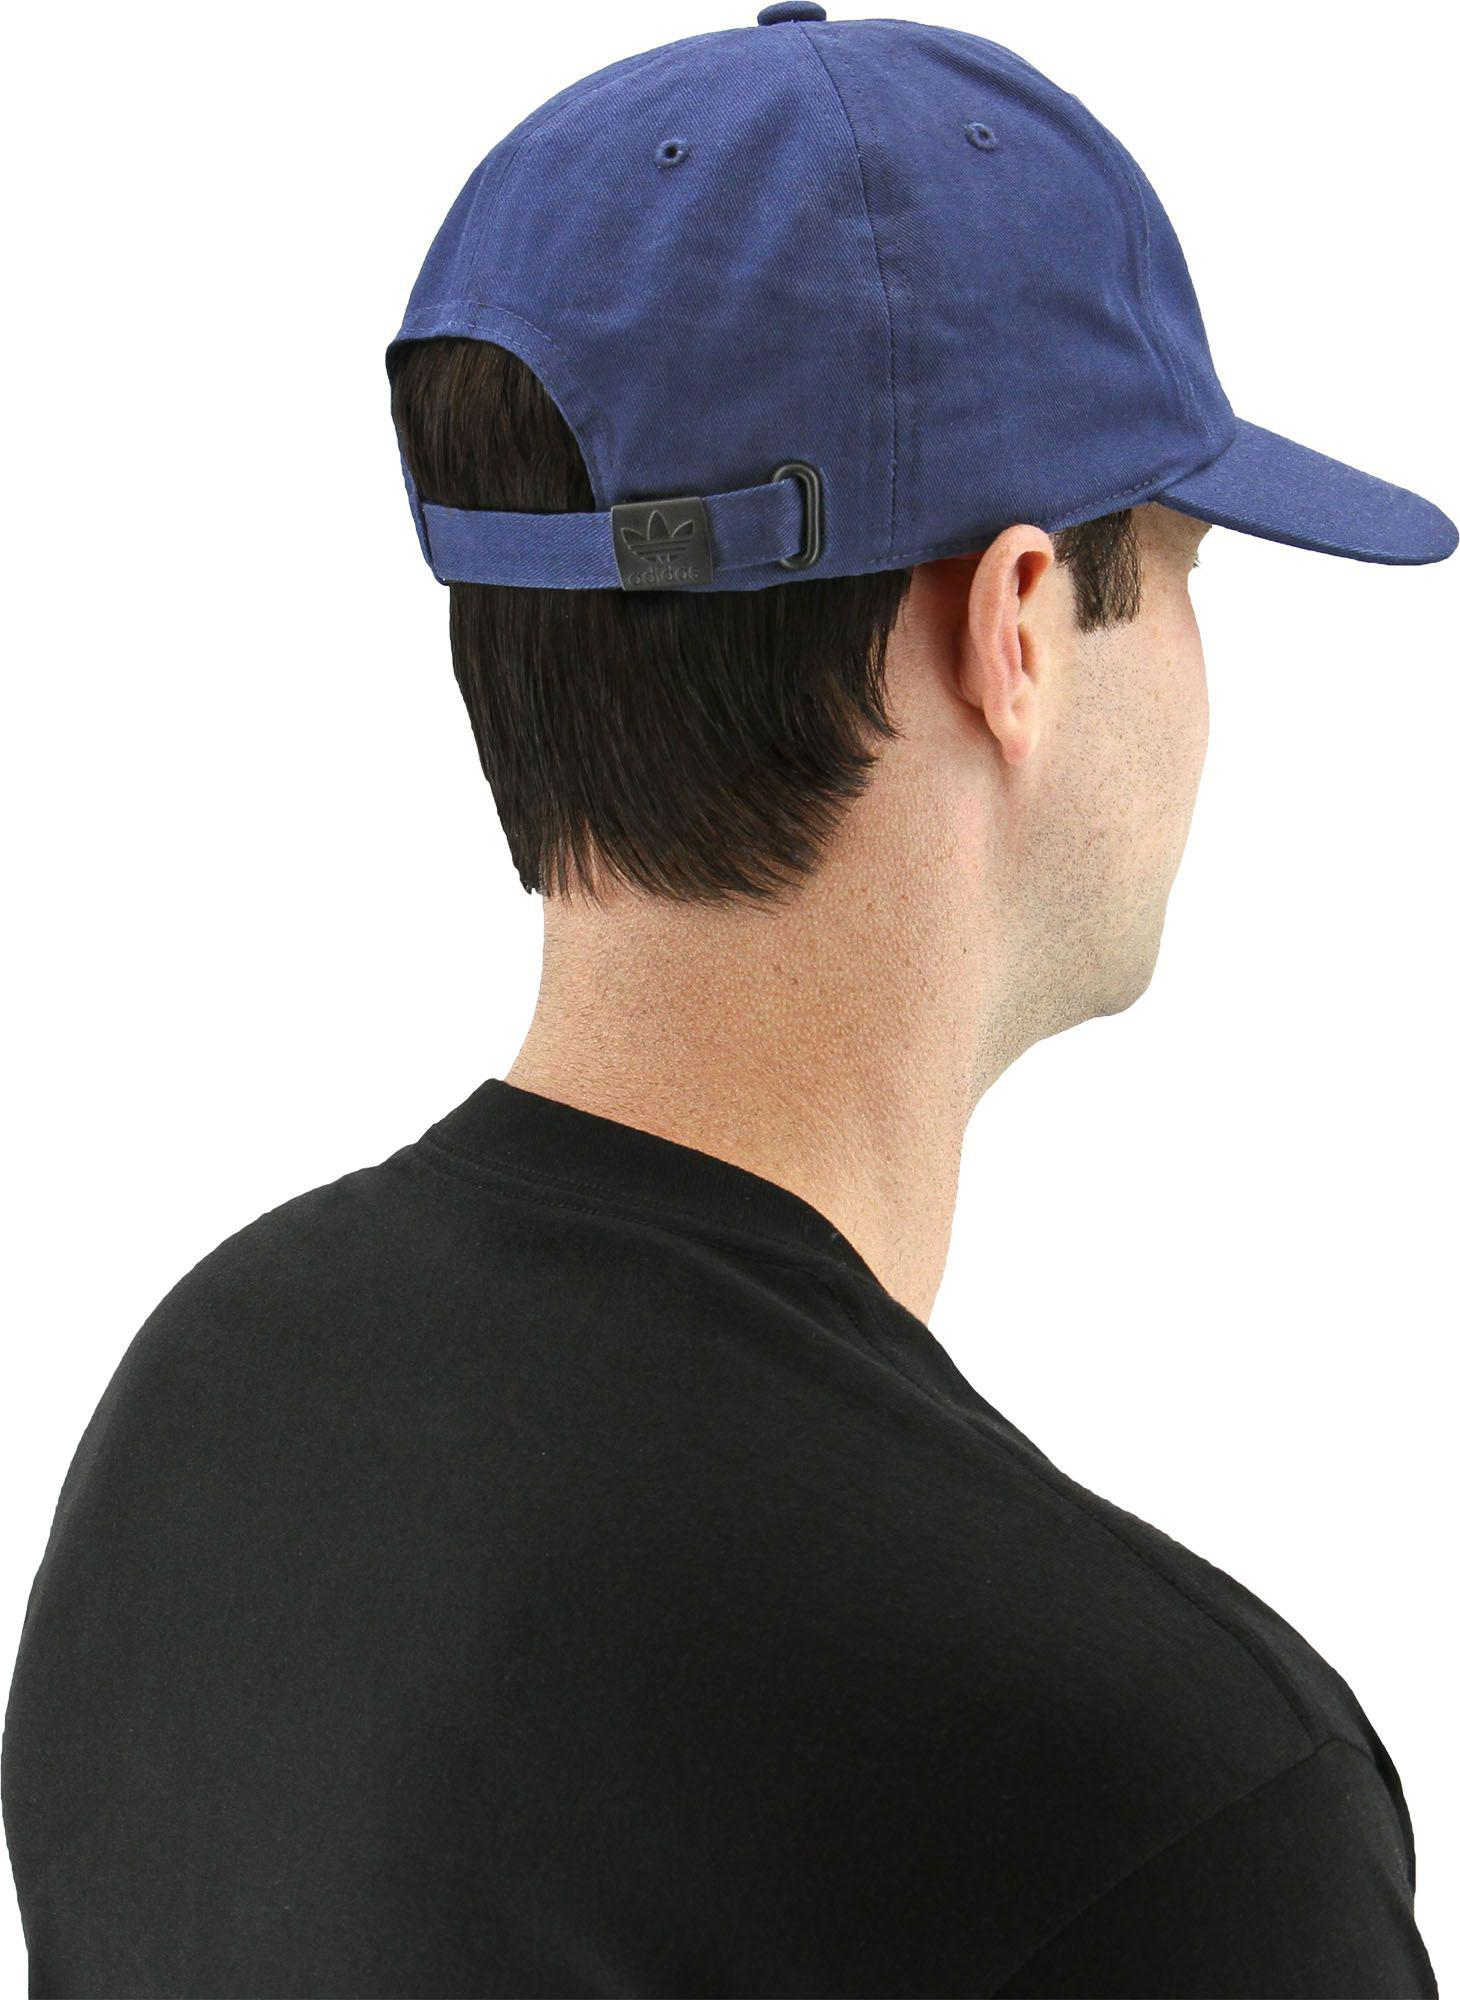 Lyst - adidas Originals Relaxed Base Strapback Hat in Blue for Men ad8a40072c4